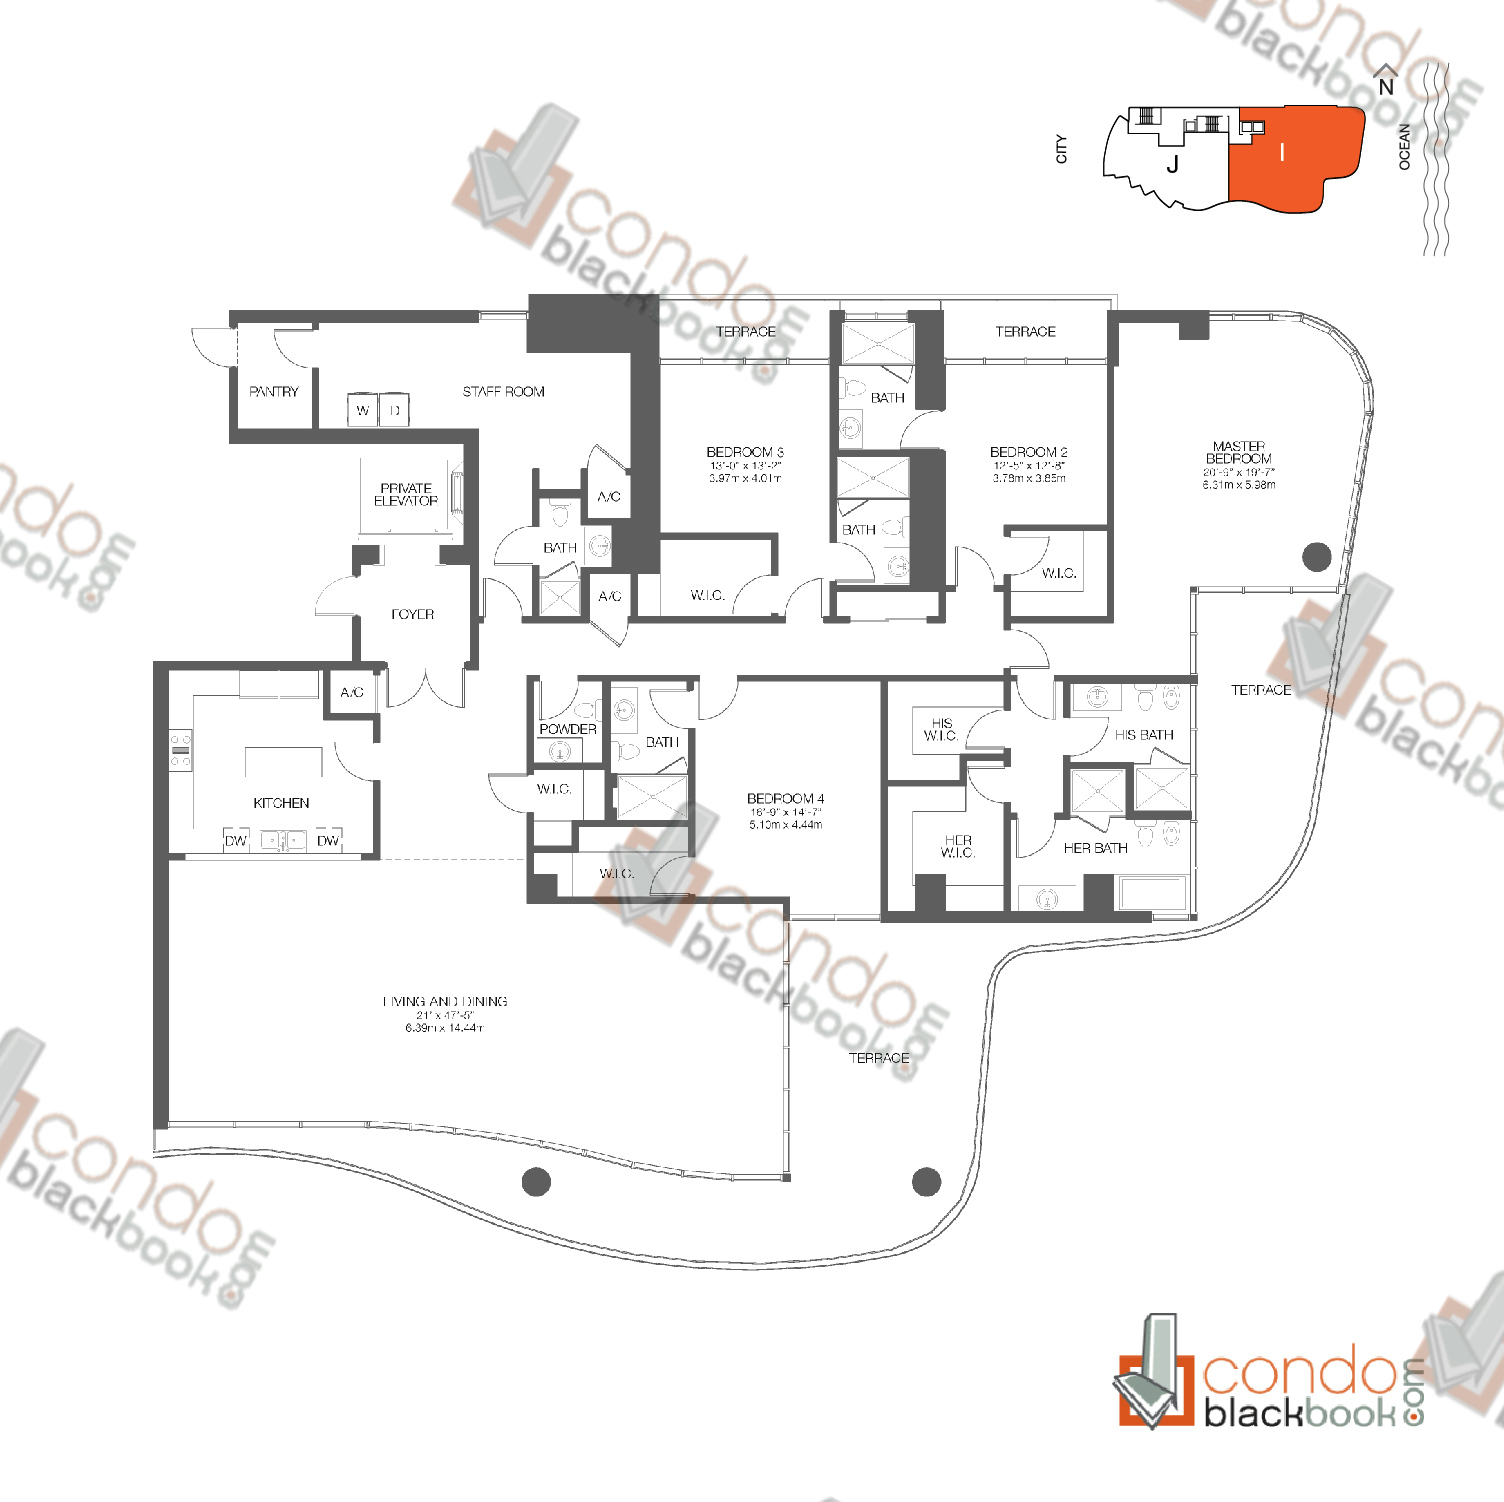 Floor plan for Chateau Beach Residences Sunny Isles Beach, model Residence I, line 06, 4/6.5 bedrooms, 4,230 sq ft